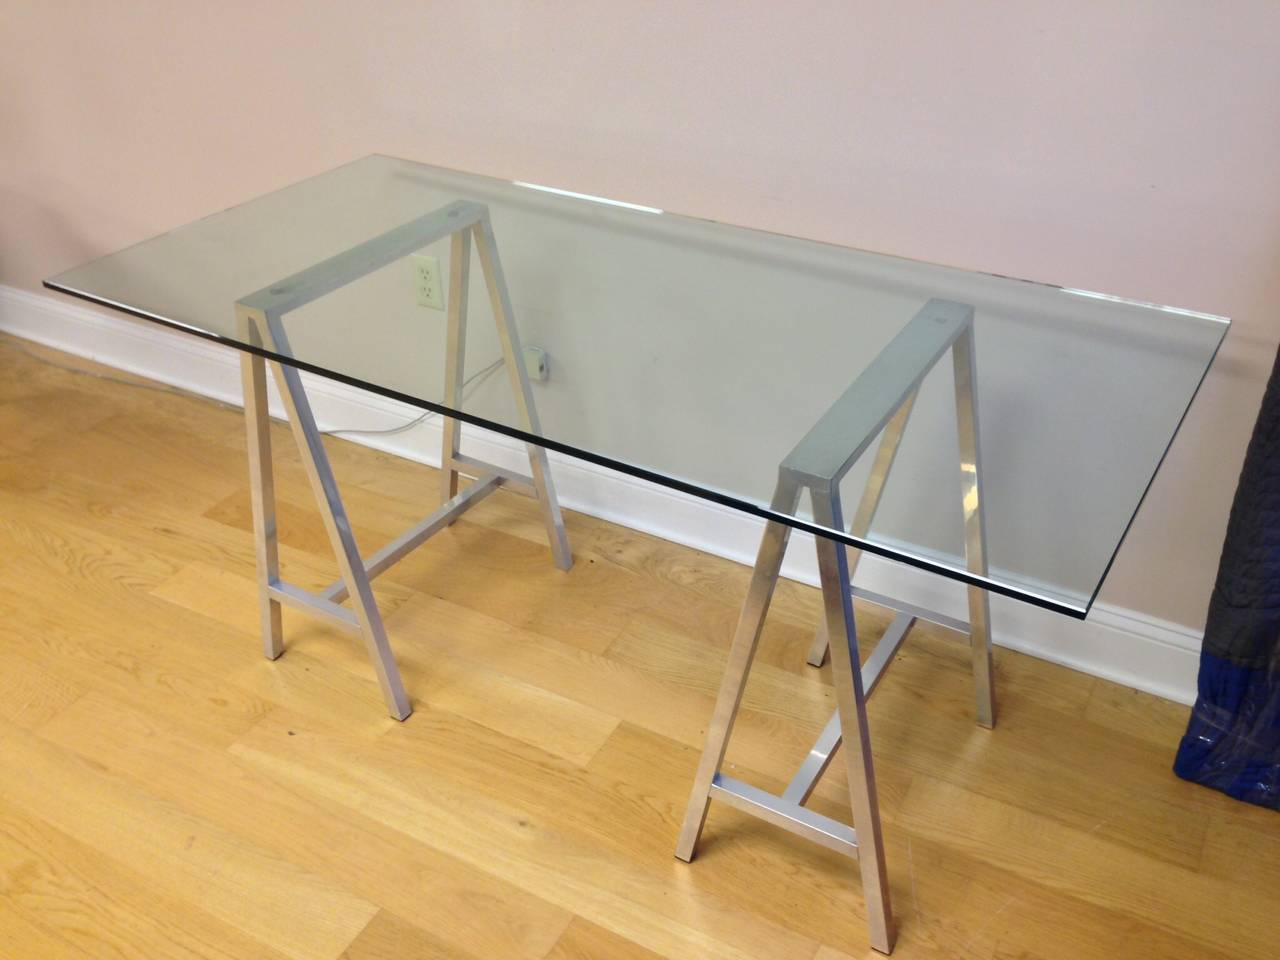 A Nice Gl Top Table Or Desk With Saw Horse Aluminum Legs They Are High